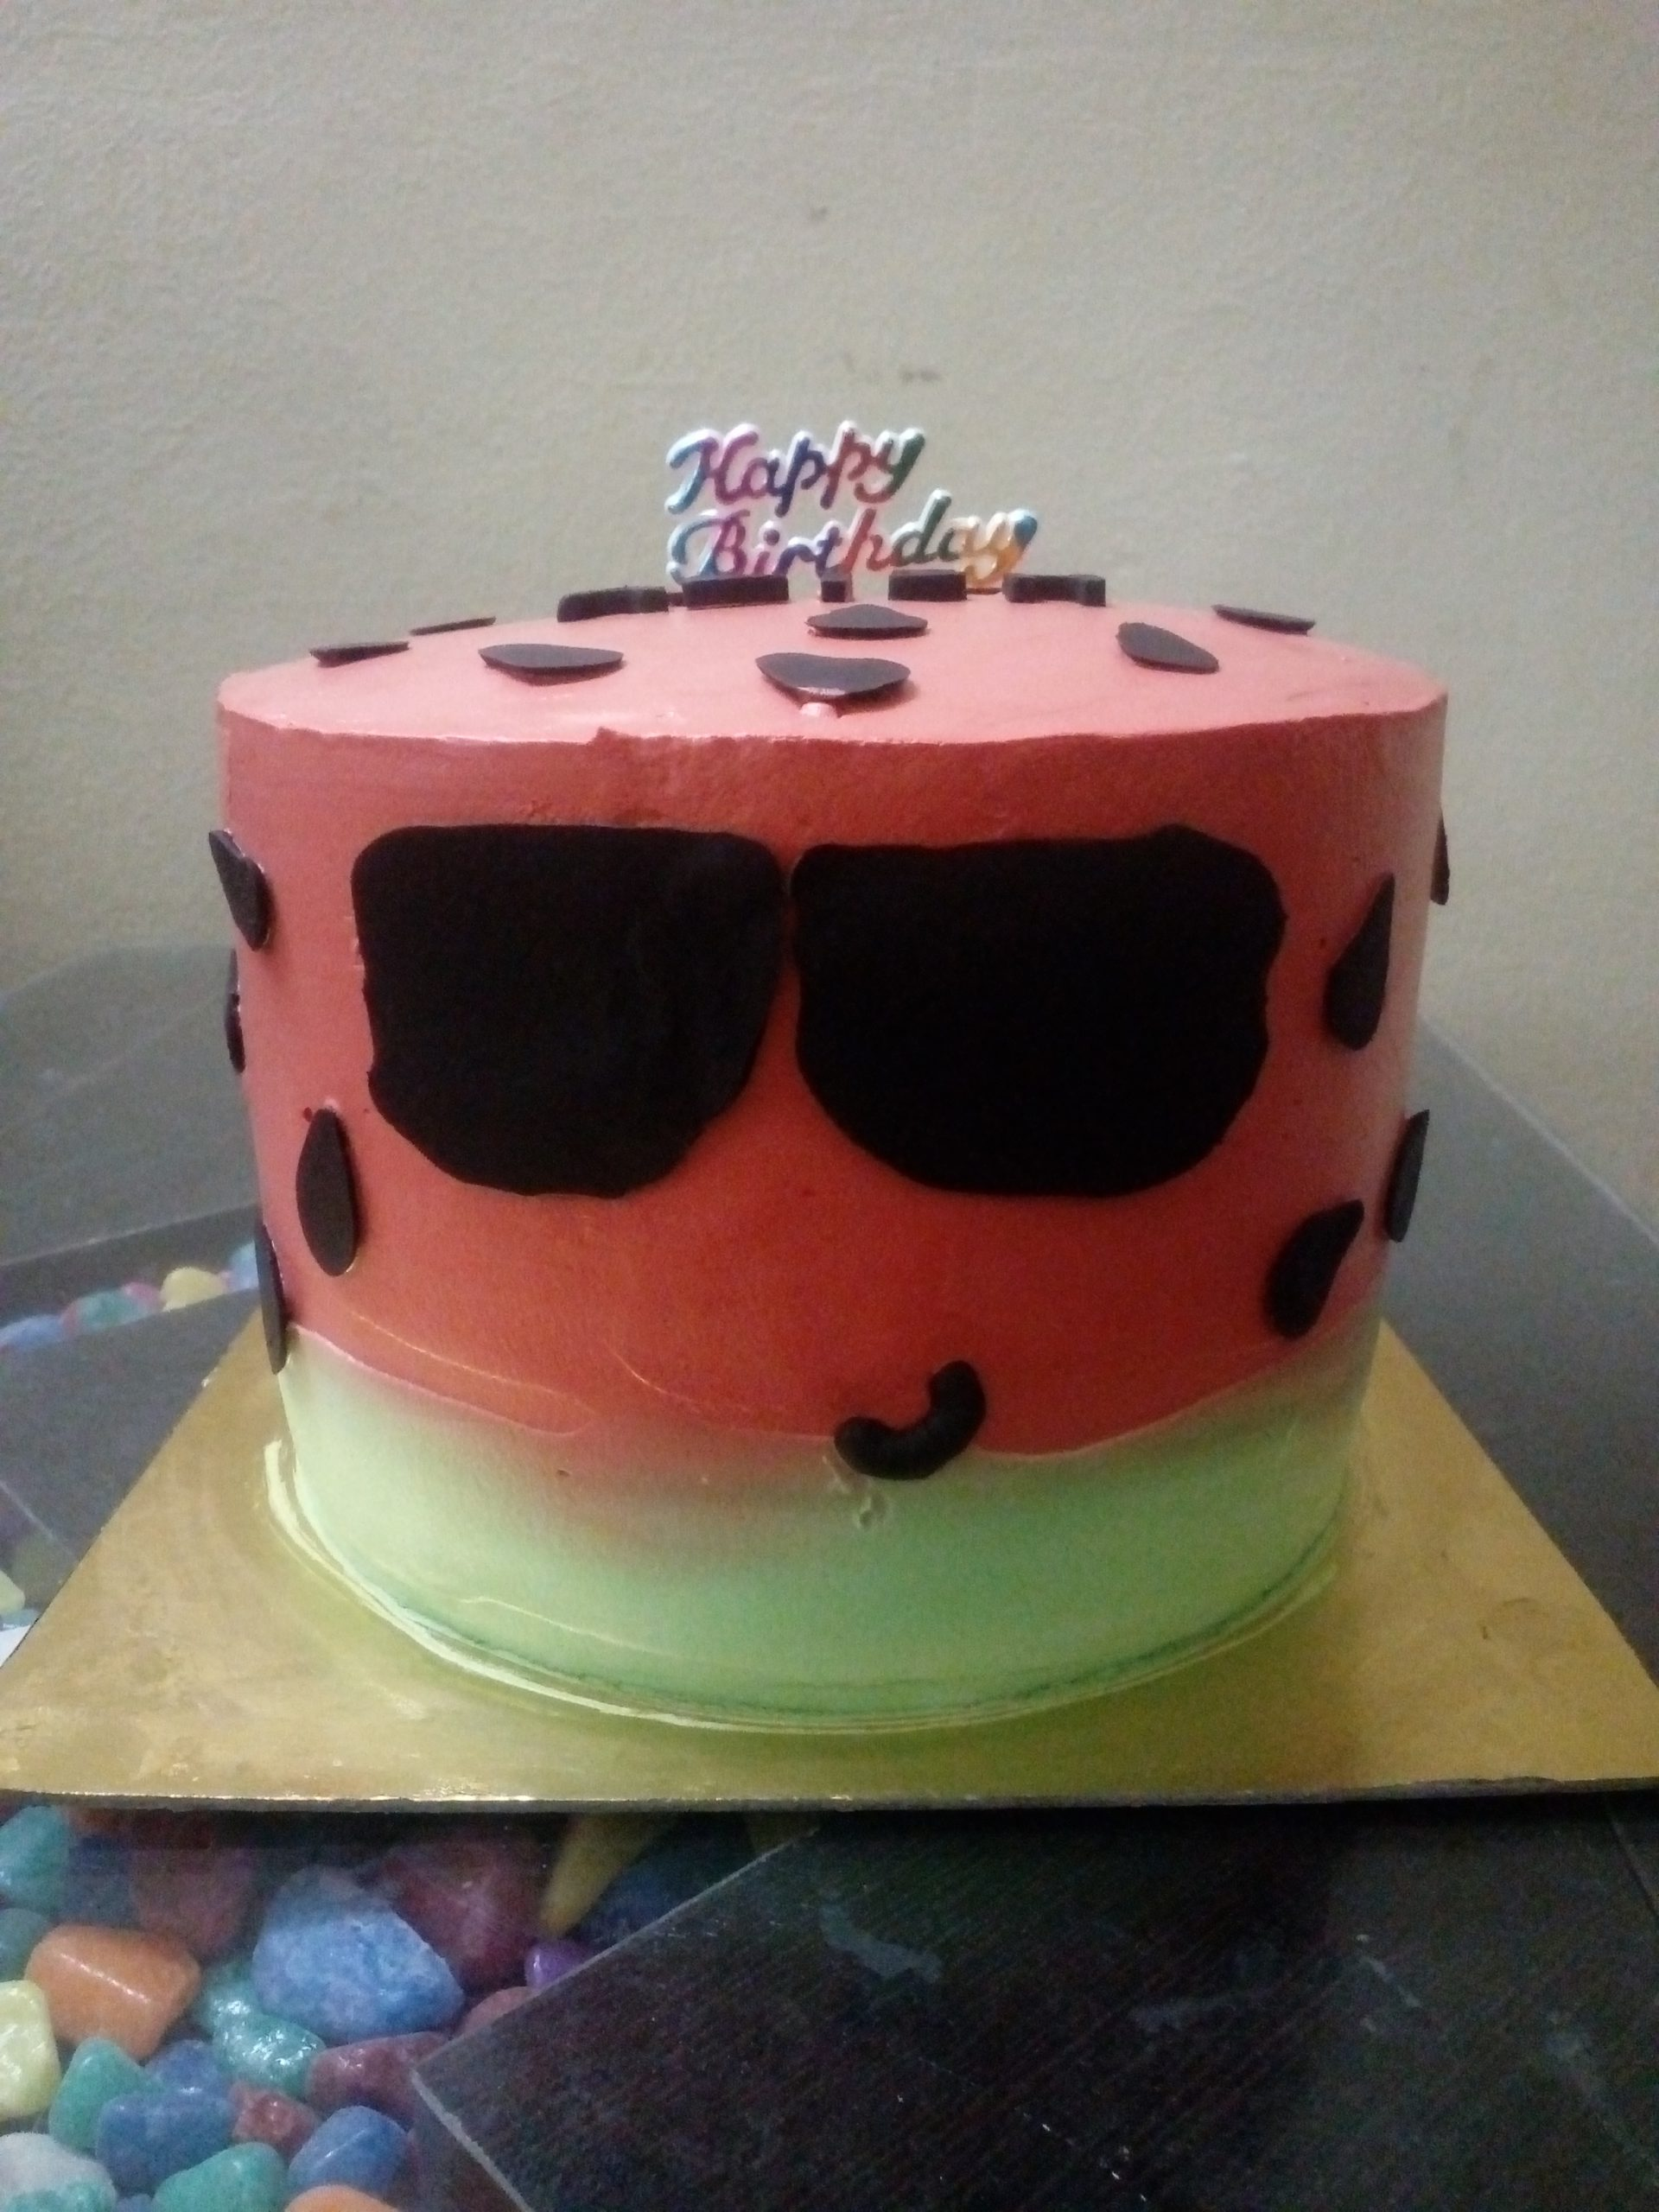 Butterscotch Flavour Cake Designs, Images, Price Near Me